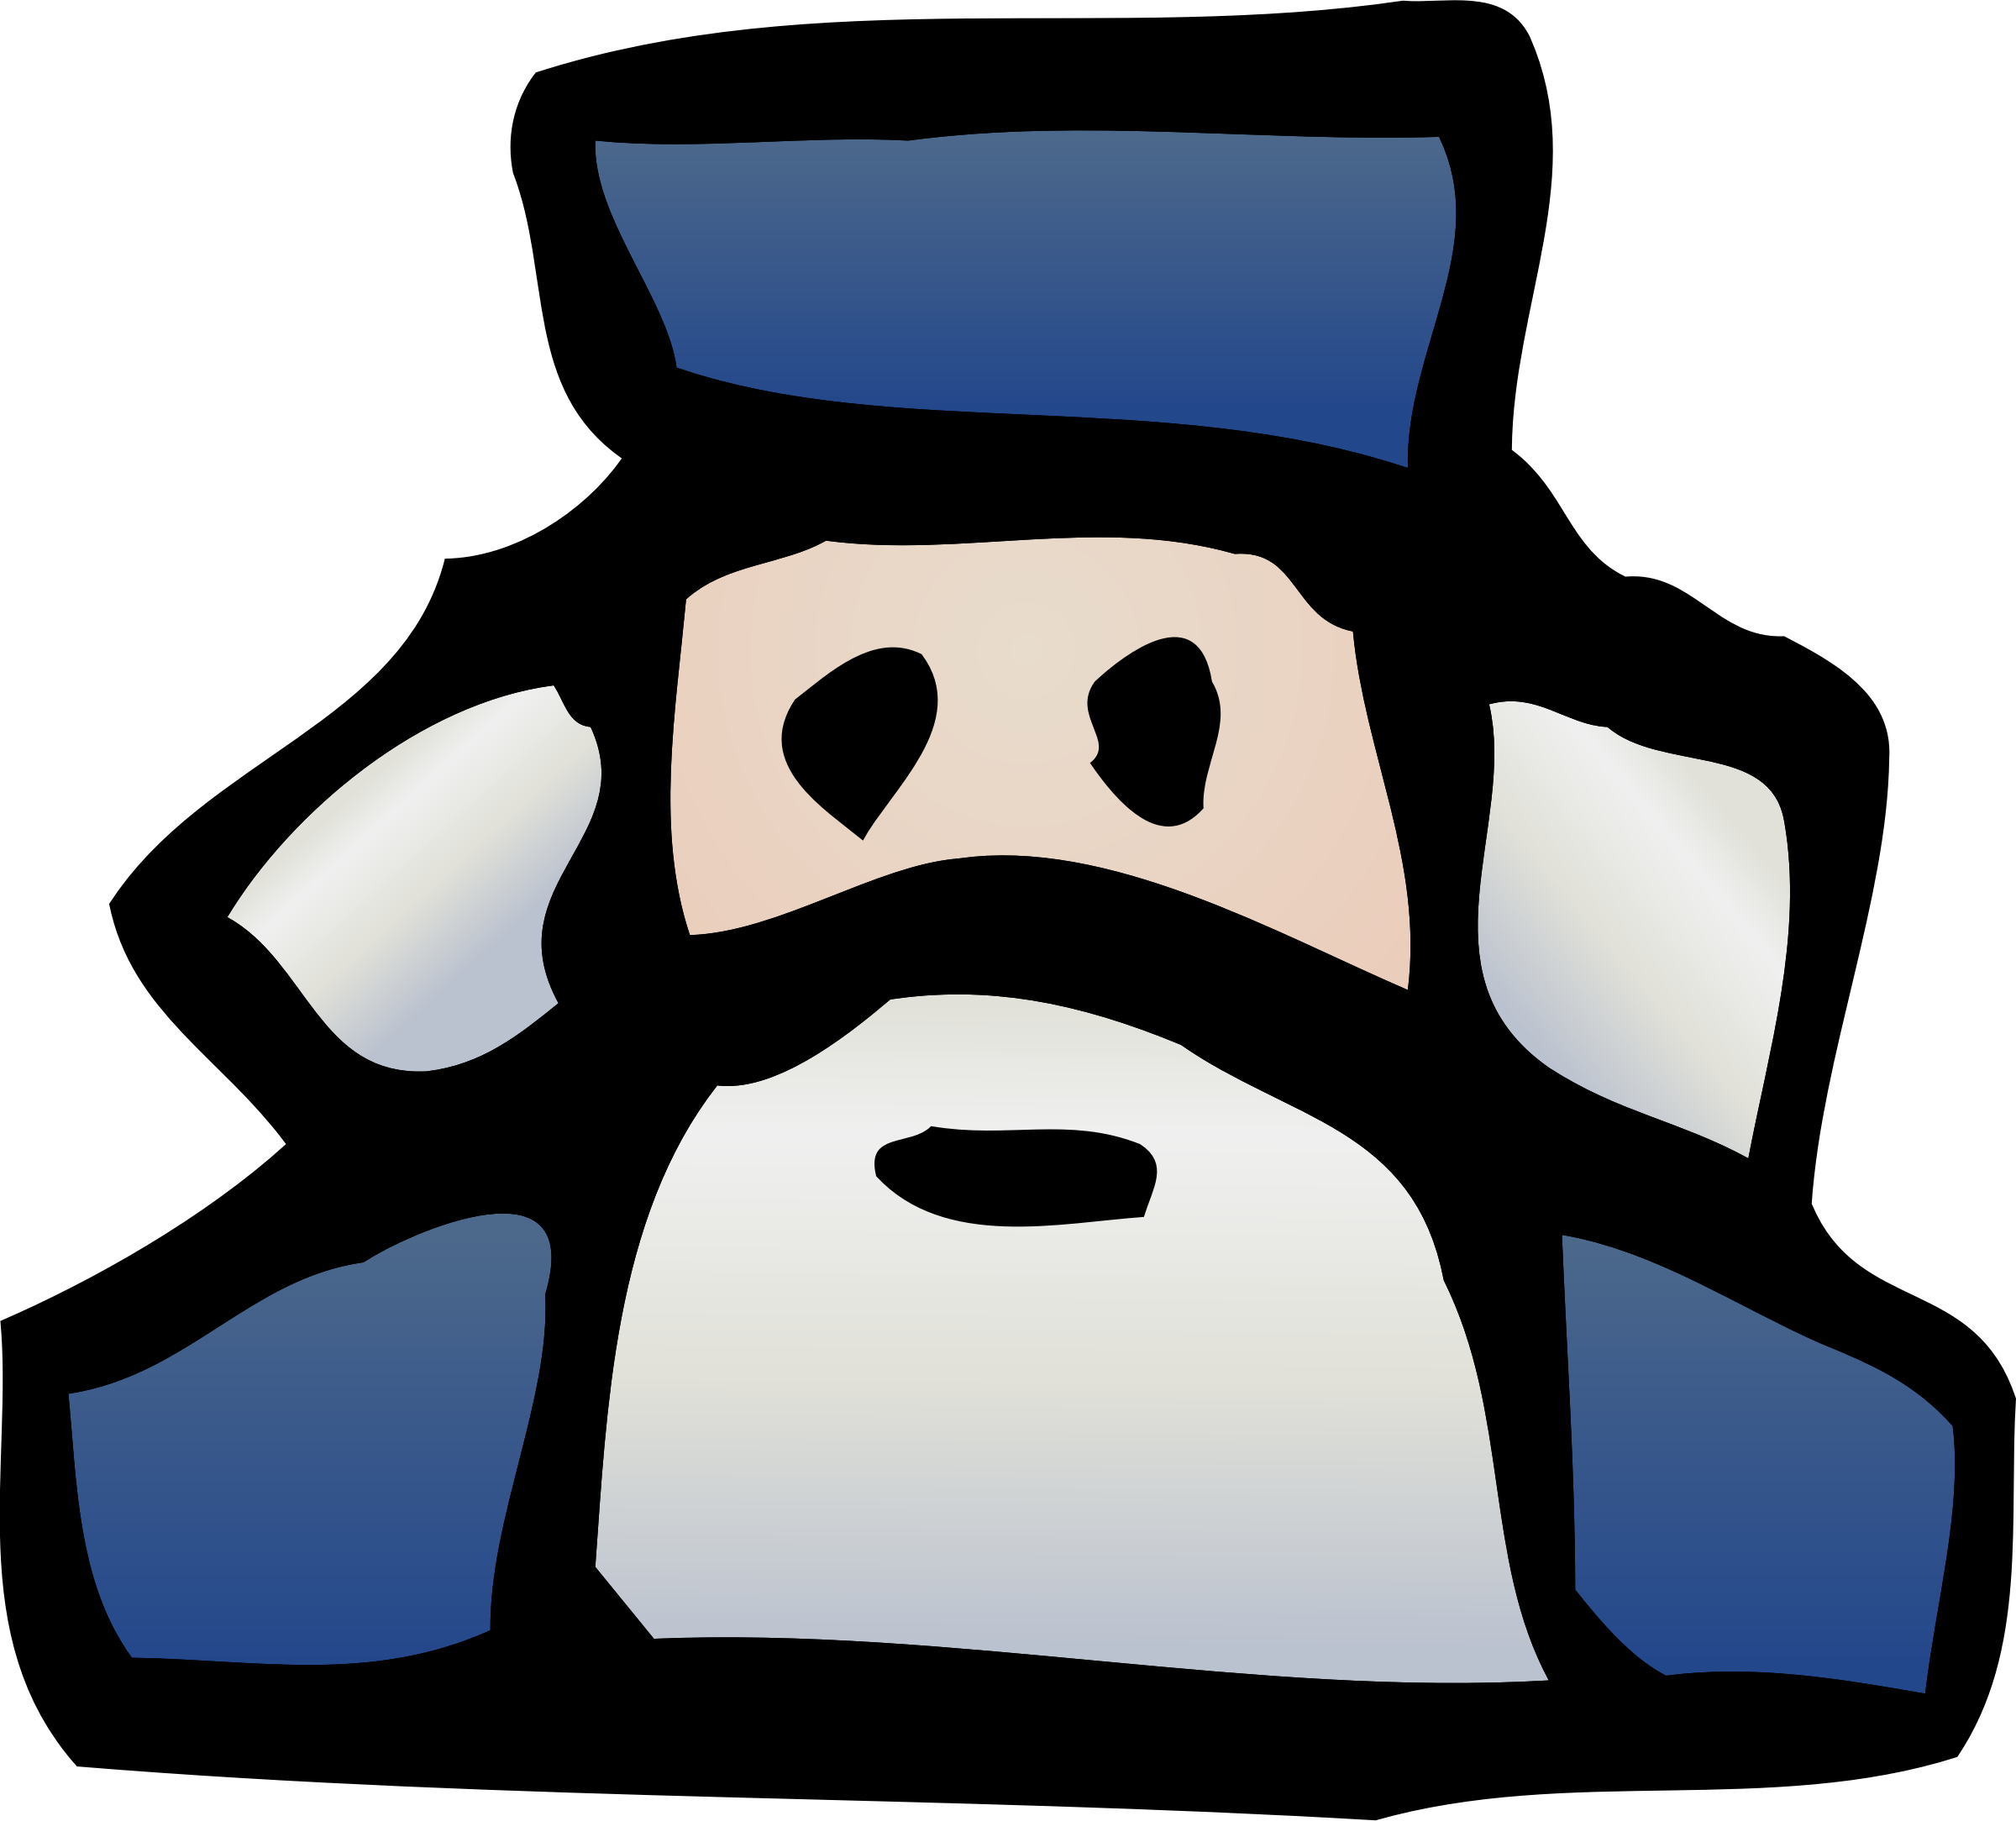 svg black and white Wizard icon. Microsoft clipart wizzard.